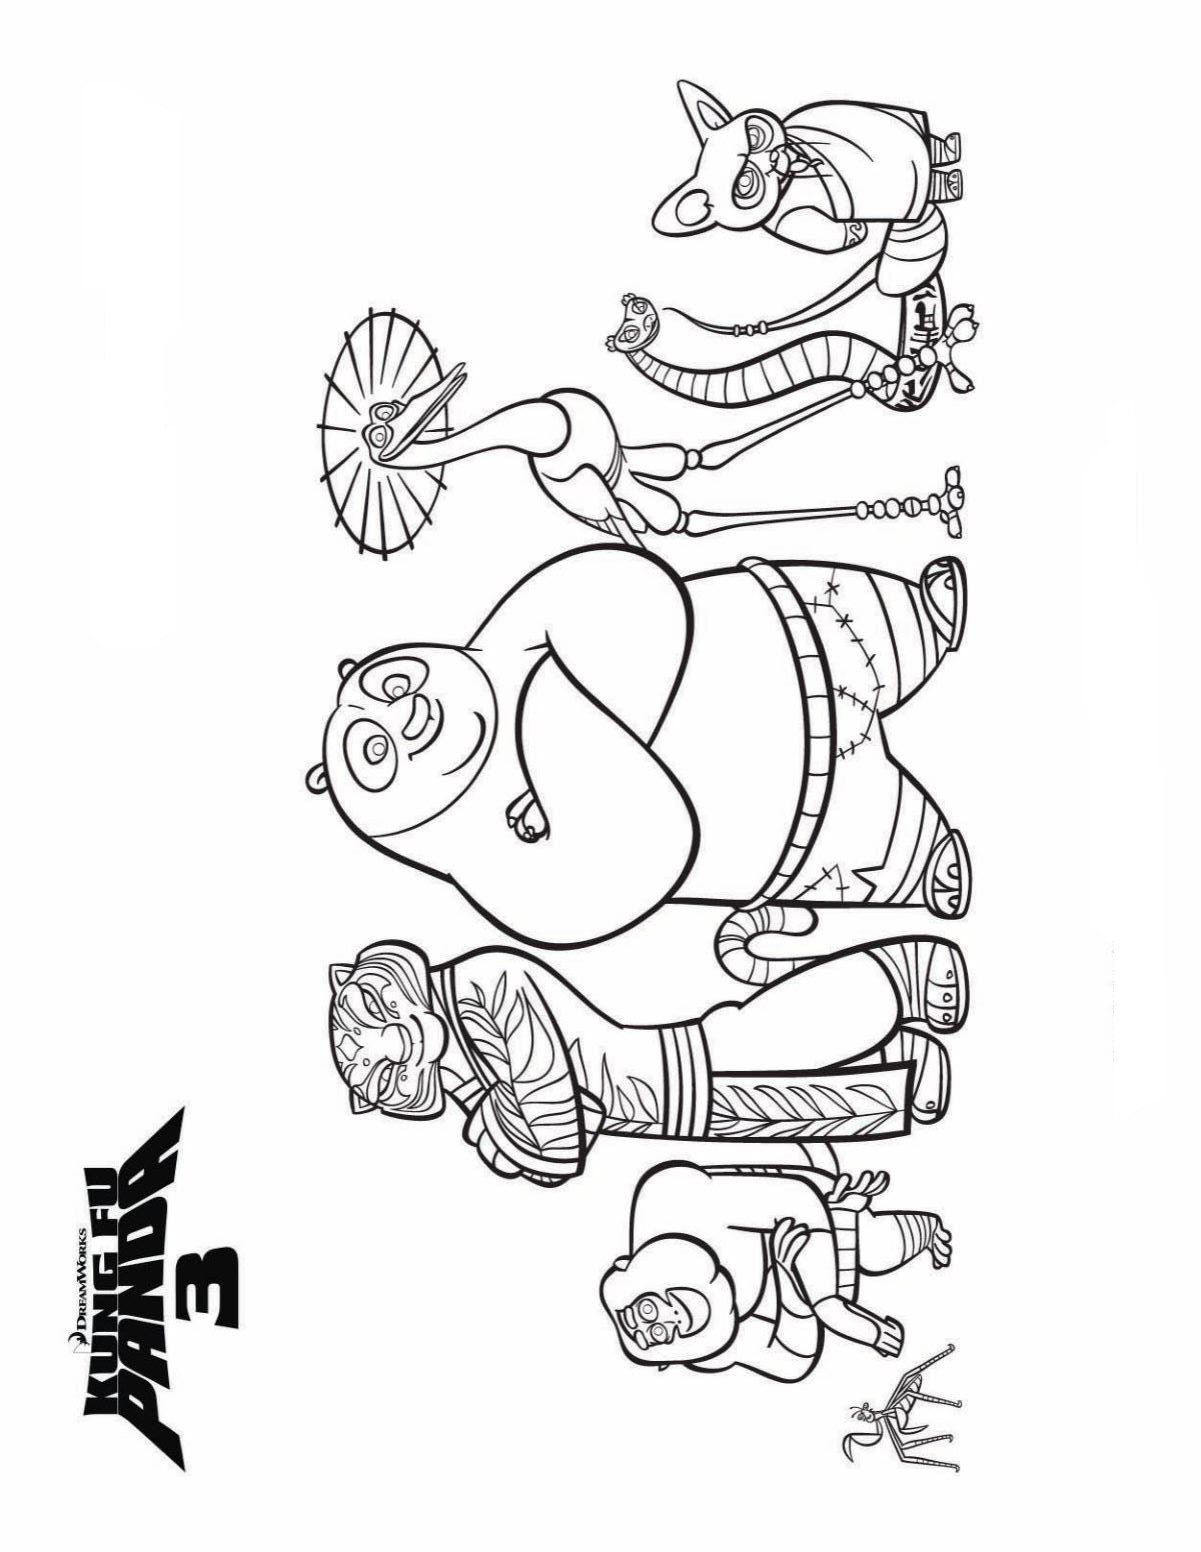 and more of these coloring pages coloring pages of kung fu panda kung fu panda 2 - Panda Coloring Page